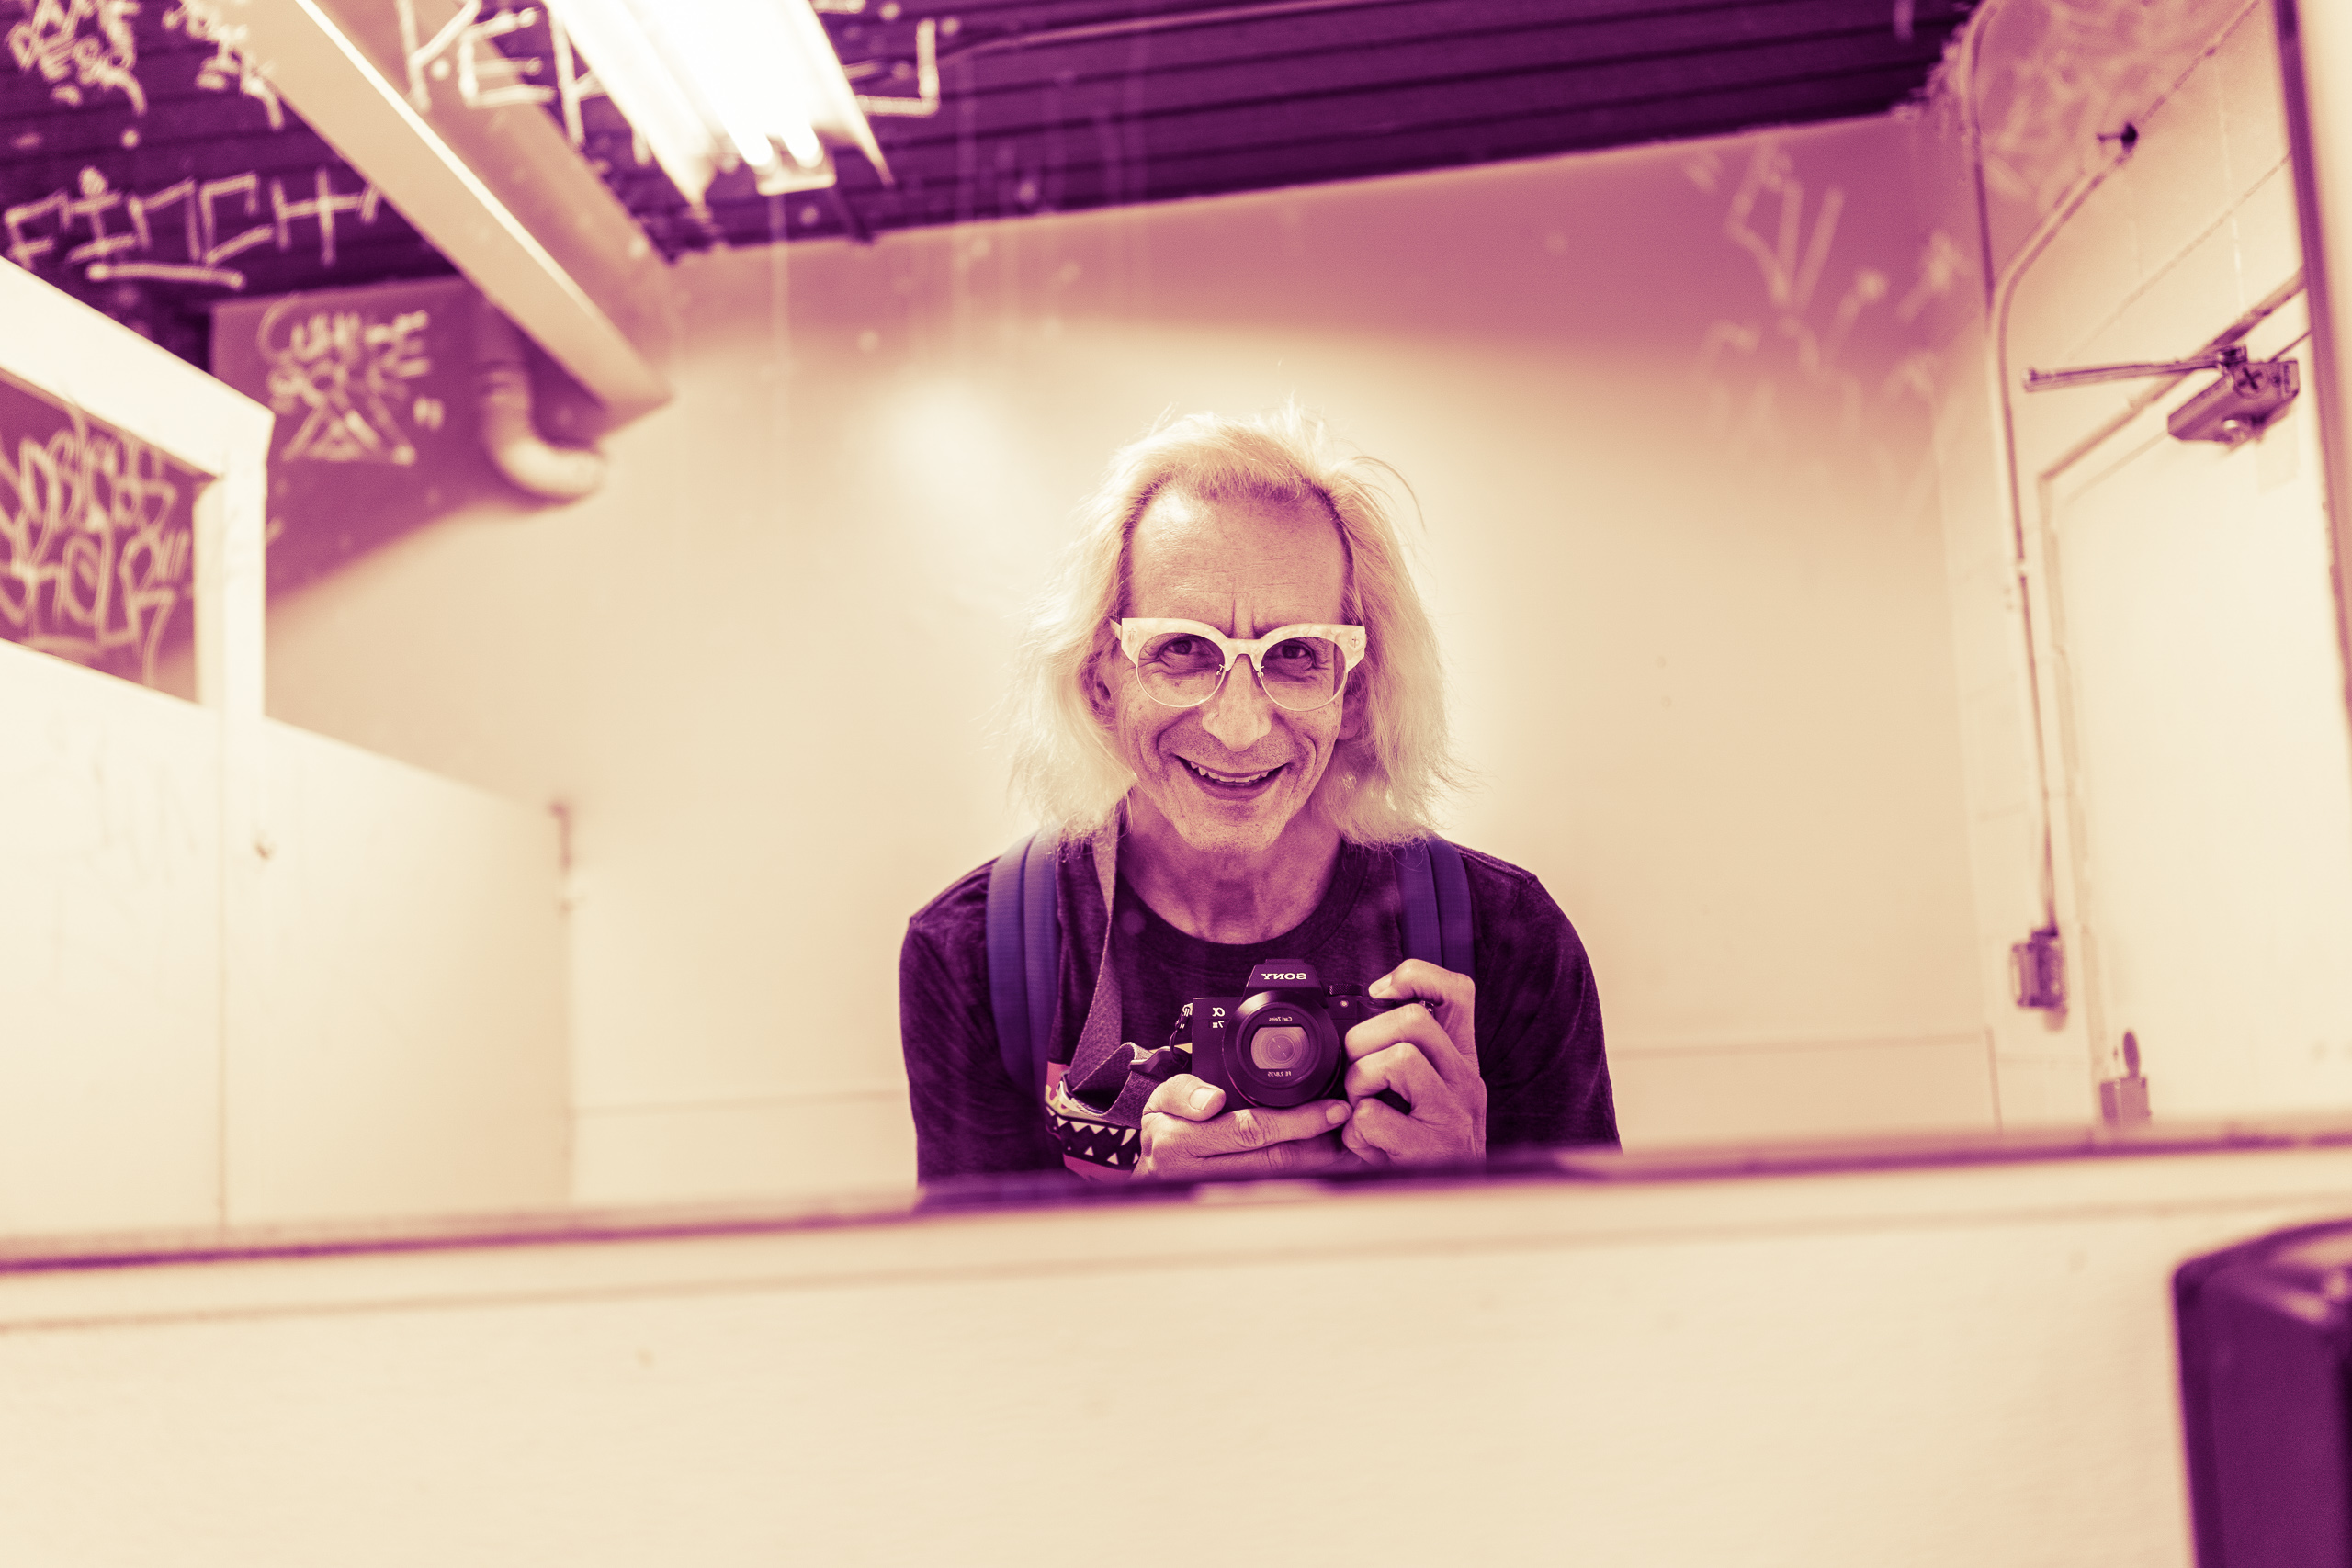 Glenn Zucman taking a selfie in the mirror of the men's room in the parking lot at 26th Street / Bergamot Art Center in Santa Monica and at the  26th St / Bergamot Station station of the LA Metro Expo Line. Zucman's figure is cut off at the bottom by the bottom of the mirror. Around the periphery the mirror glass is etched with various tags.